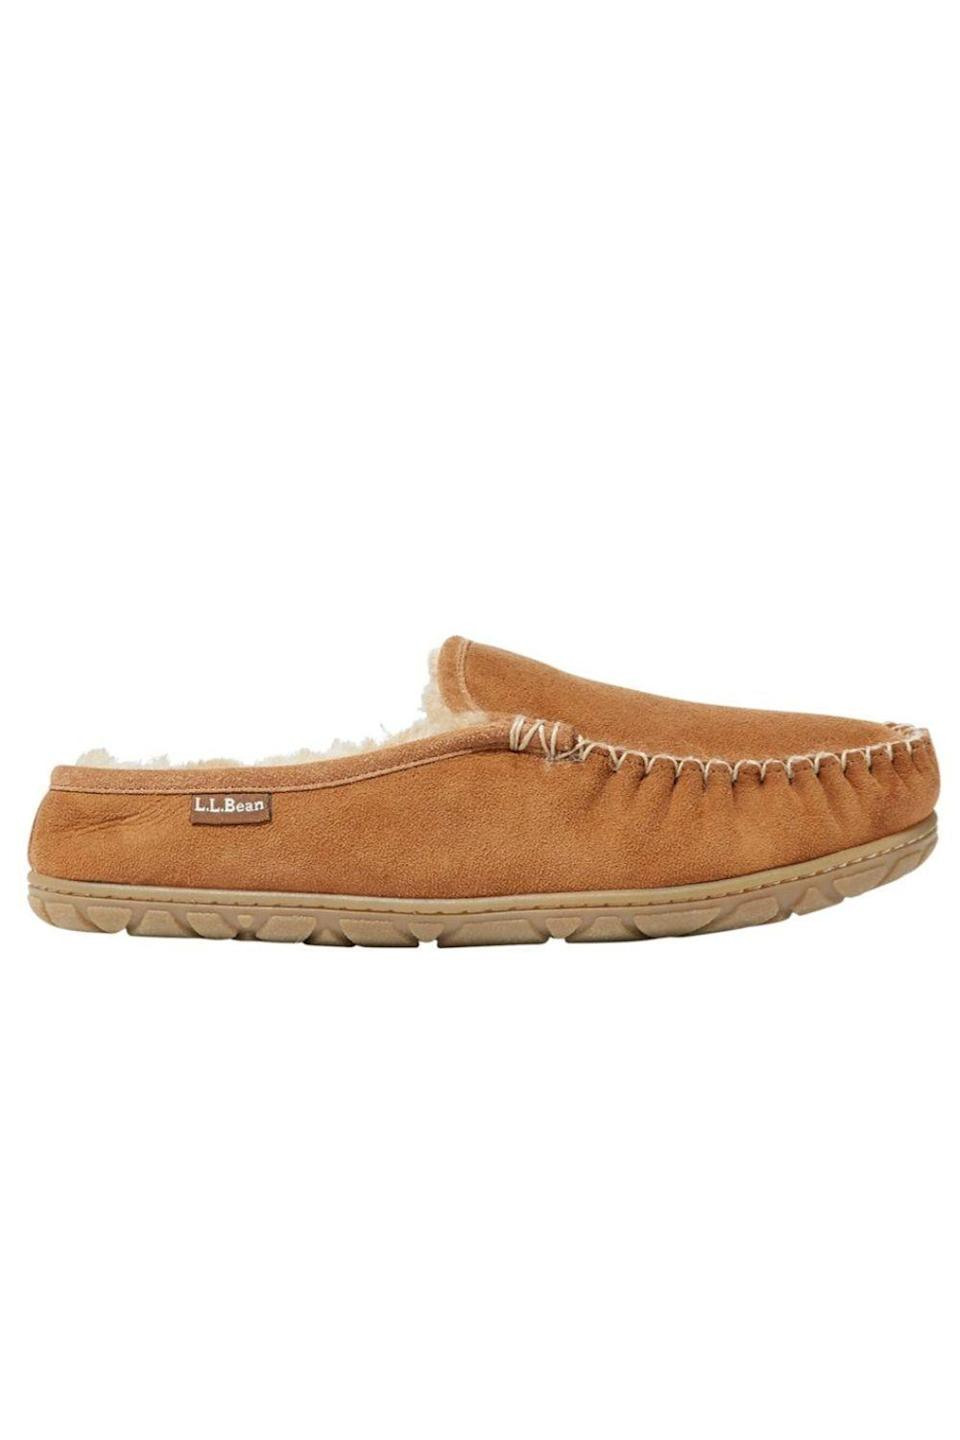 """<p><strong>L.L. Bean</strong></p><p>llbean.com</p><p><strong>$79.00</strong></p><p><a href=""""https://go.redirectingat.com?id=74968X1596630&url=https%3A%2F%2Fwww.llbean.com%2Fllb%2Fshop%2F70638%3Fpage%3Dmens-wicked-good-scuffs&sref=https%3A%2F%2Fwww.oprahdaily.com%2Flife%2Fg32418397%2Fgifts-for-godfather%2F"""" rel=""""nofollow noopener"""" target=""""_blank"""" data-ylk=""""slk:Shop Now"""" class=""""link rapid-noclick-resp"""">Shop Now</a></p><p>If your godfather is also a dad himself, he's working double duty, so make sure he has a pair of cozy slippers to slide on at the end of a long day. This pair is made with superior sheepskin and lined with warm fleece, so he's bound to feel like he's walking on clouds.</p>"""